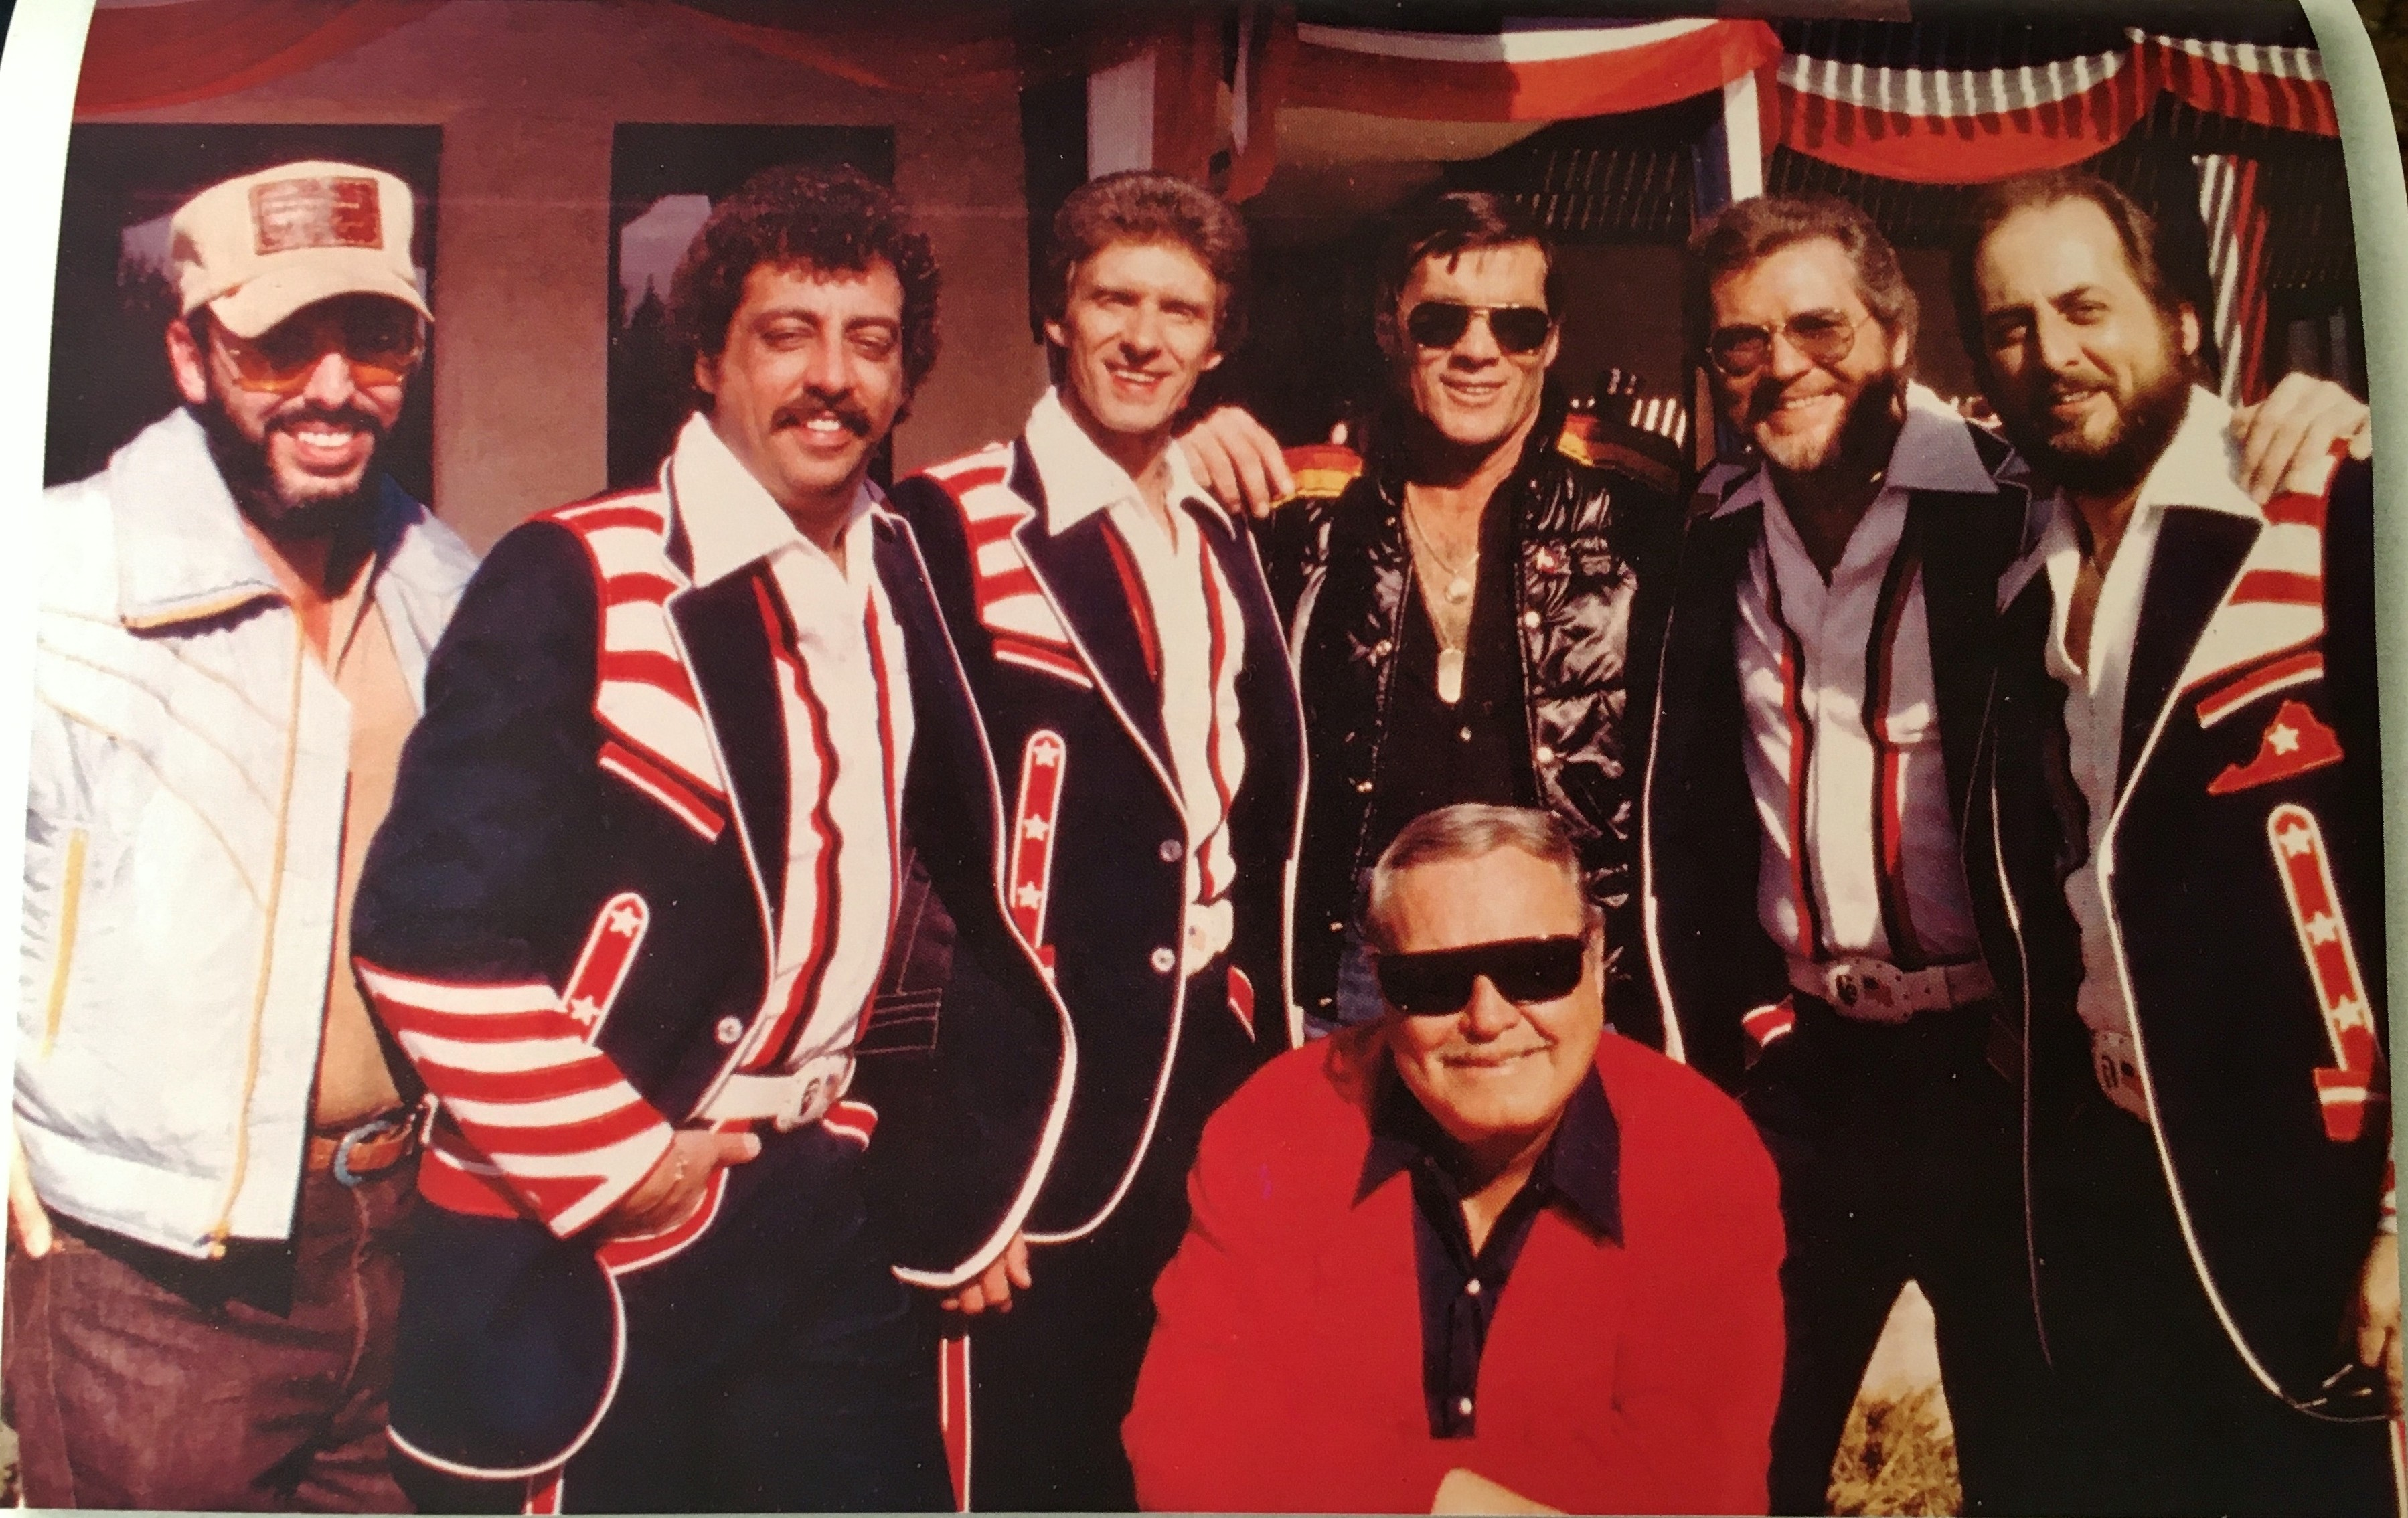 """Statler Brothers spend a day with Jackie Gleason, Snuff Garrett and director Hal Needham on """"Smokey and the Bandit II,"""" 1980"""